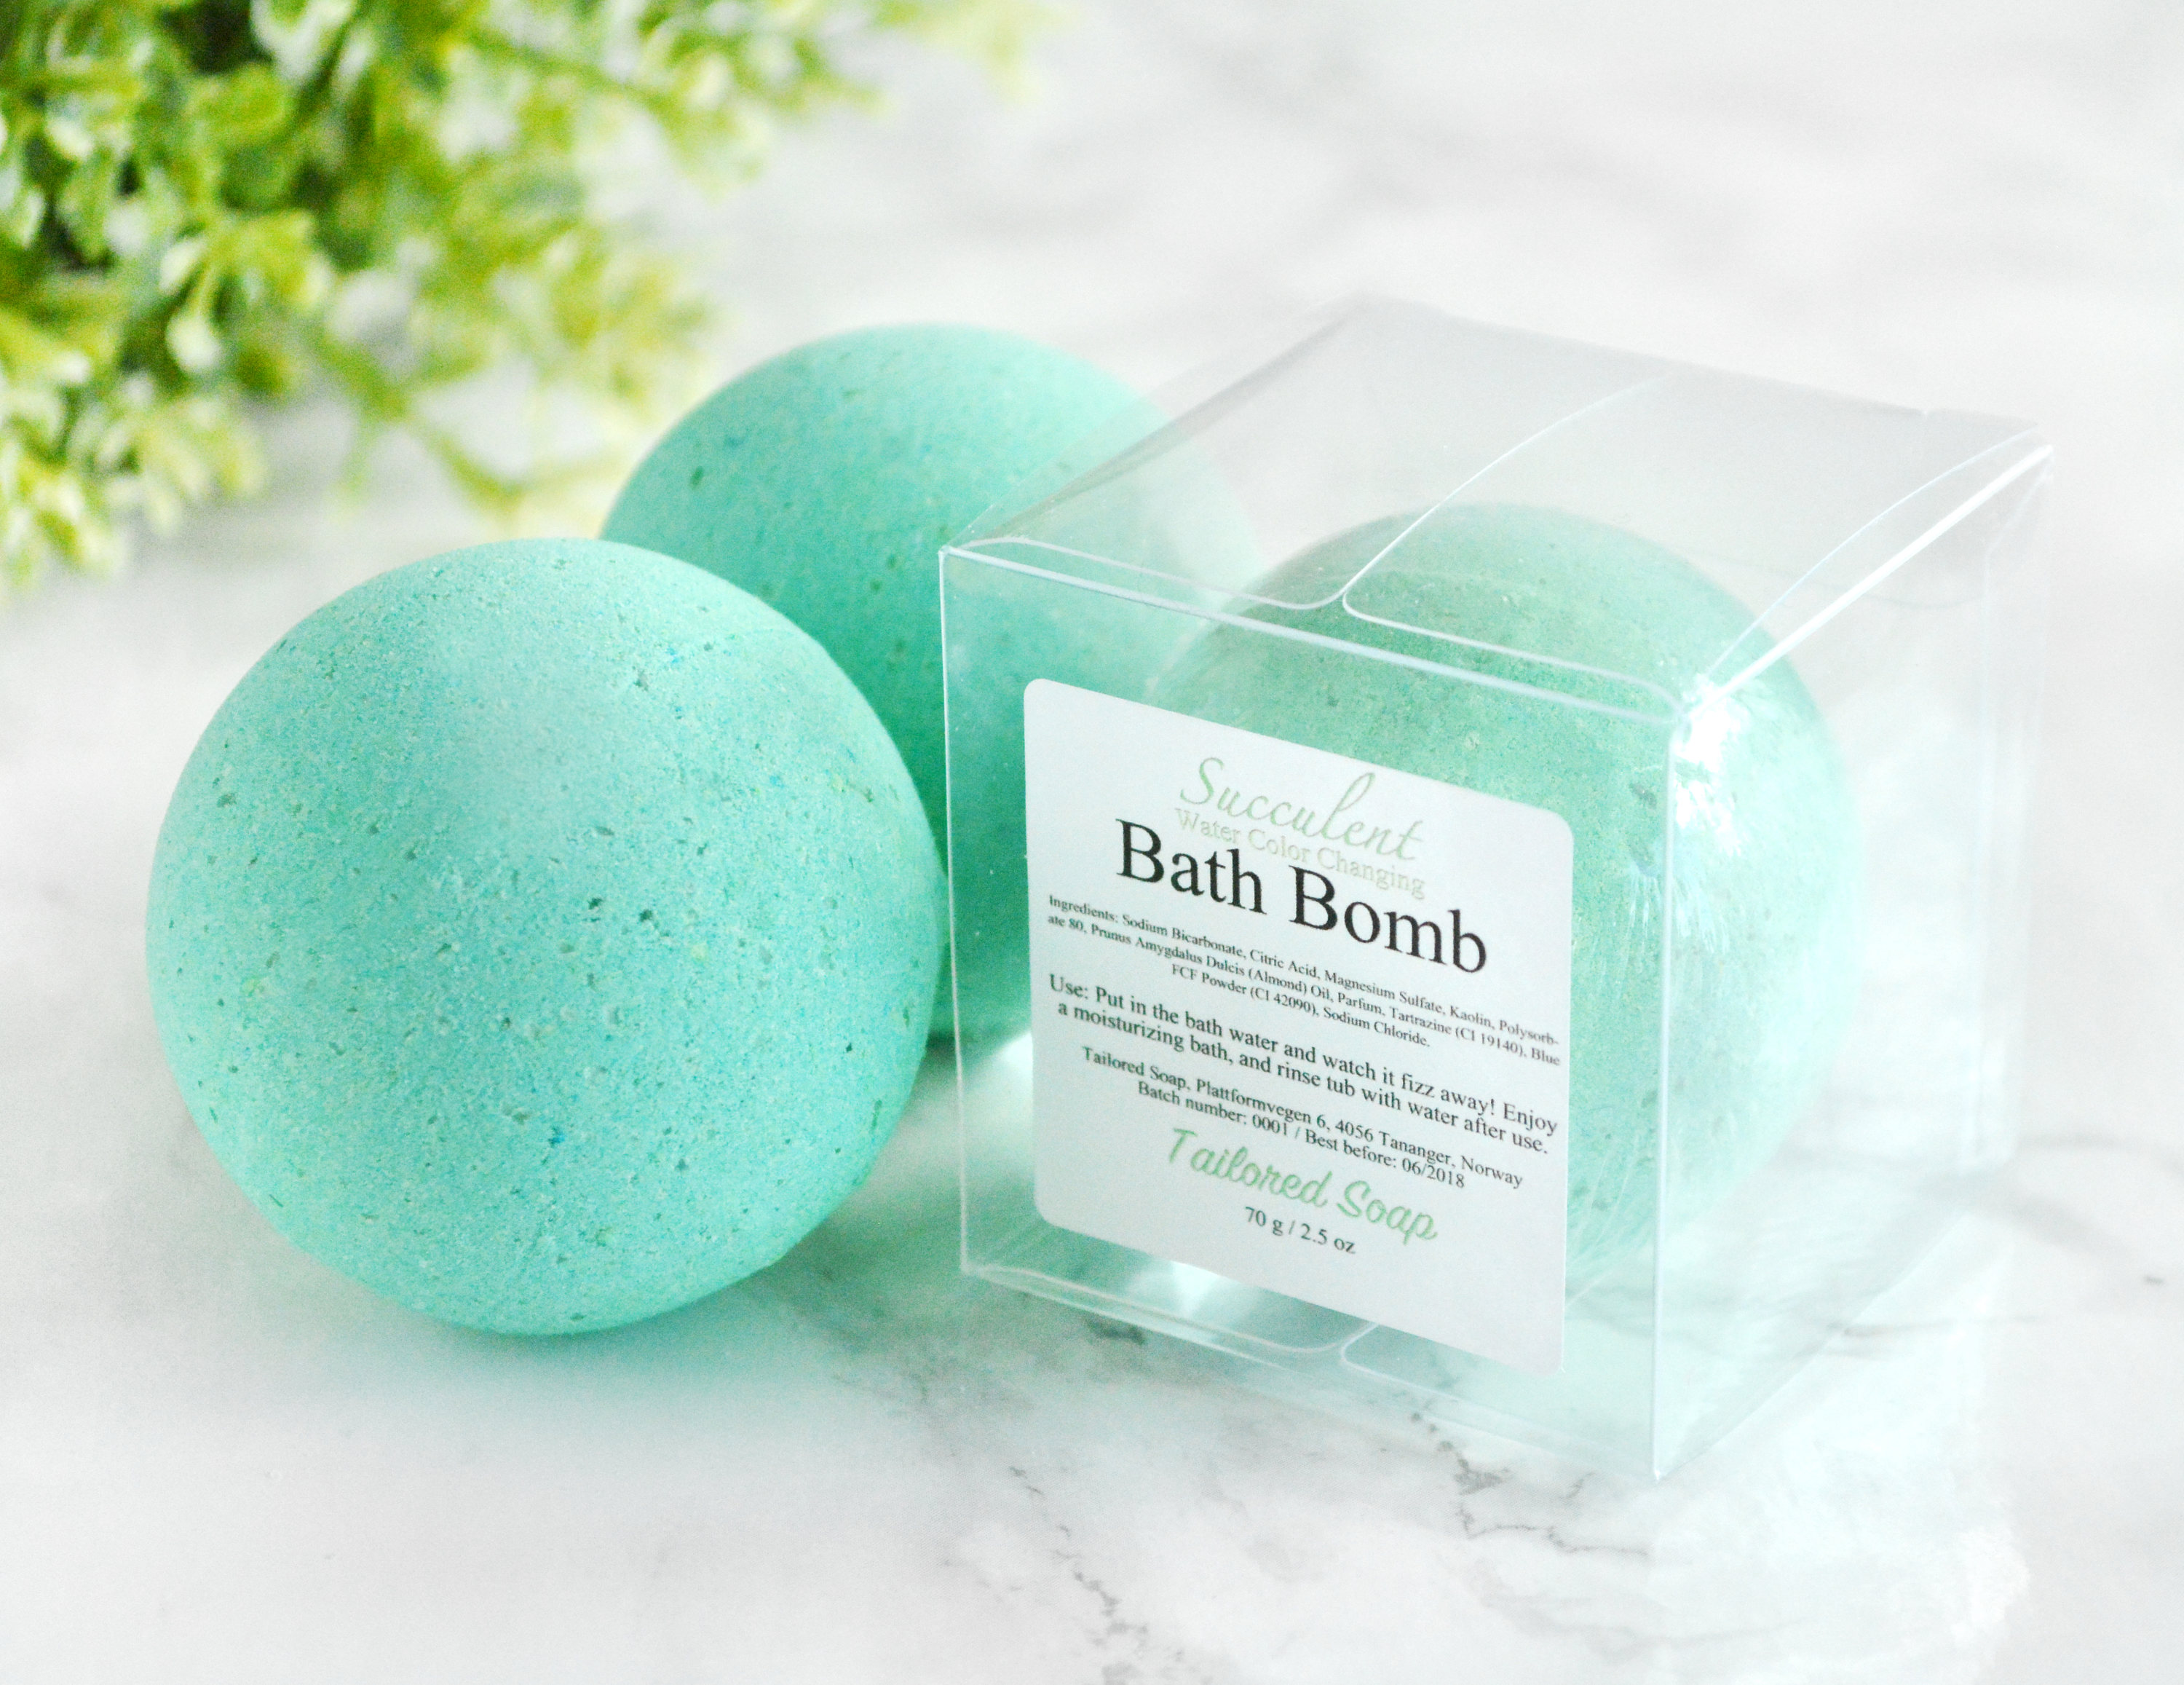 Green Succulent Bath Bomb by Tailored Soap